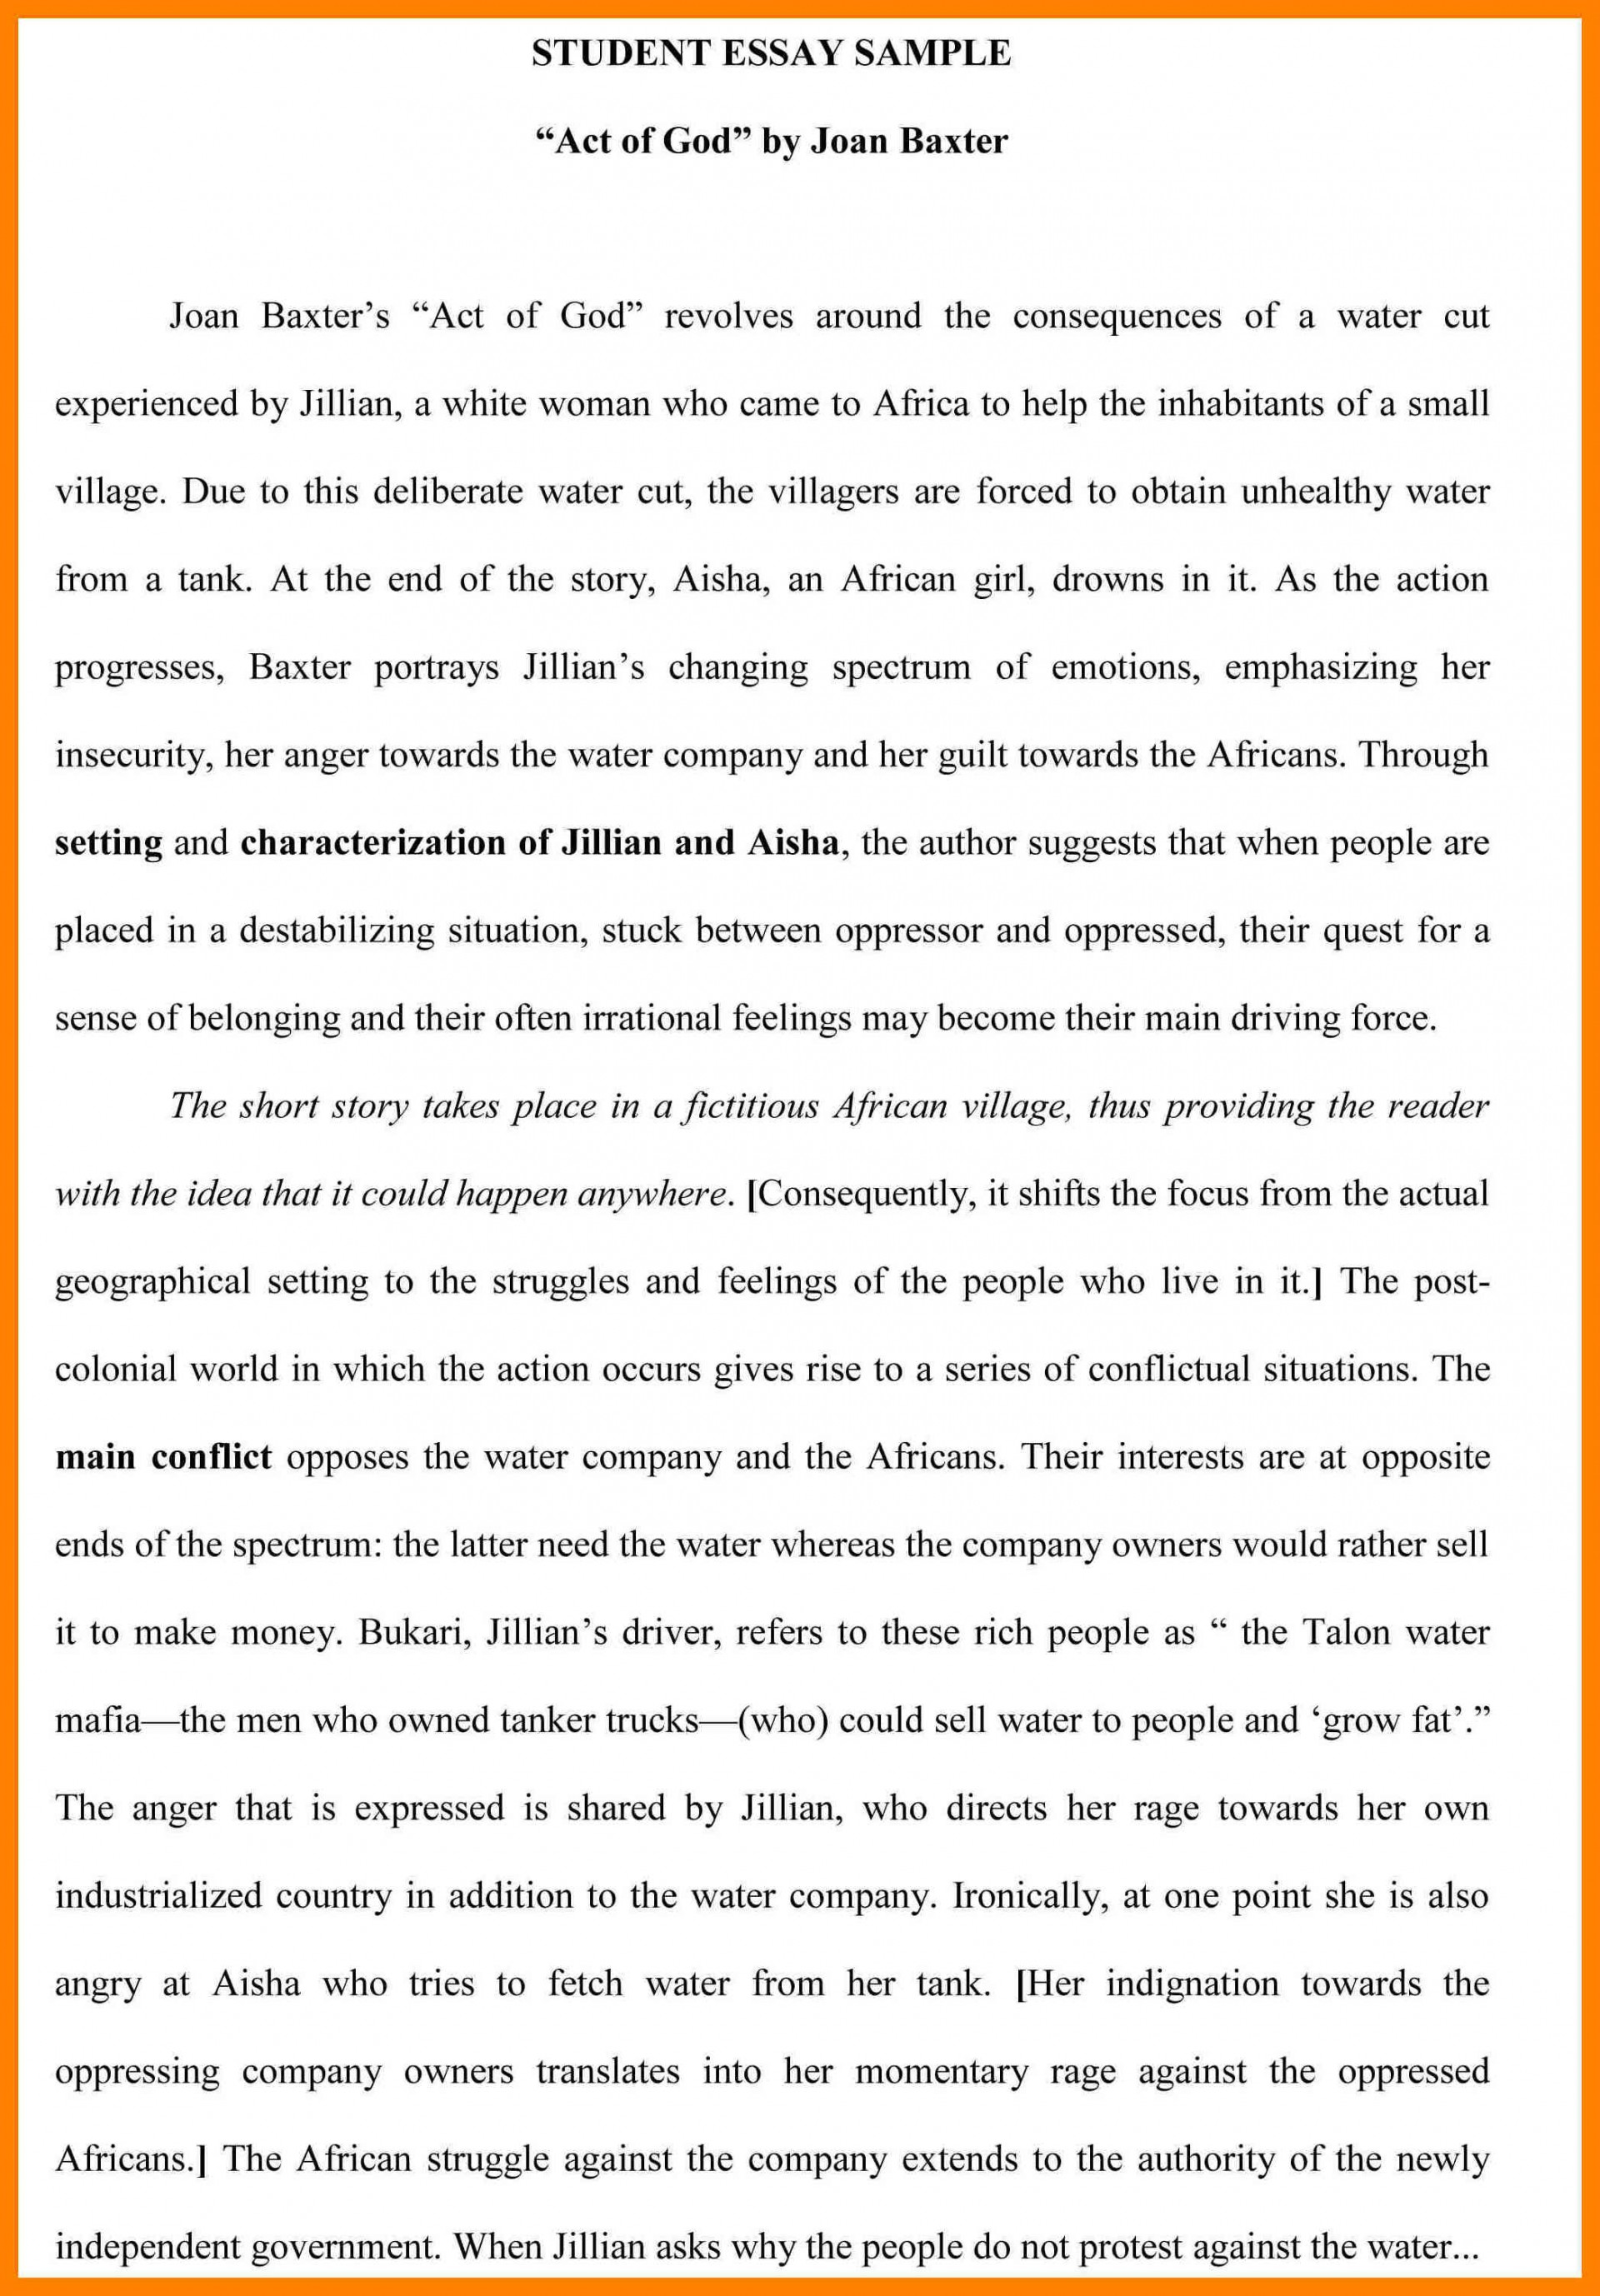 004 Essay Example How To Write An Act Sample Math Test Elmifermetures Com Ideas Collection Awesome Of Livesto Essays Pdf New Topics Dreaded 2018 Template 1920